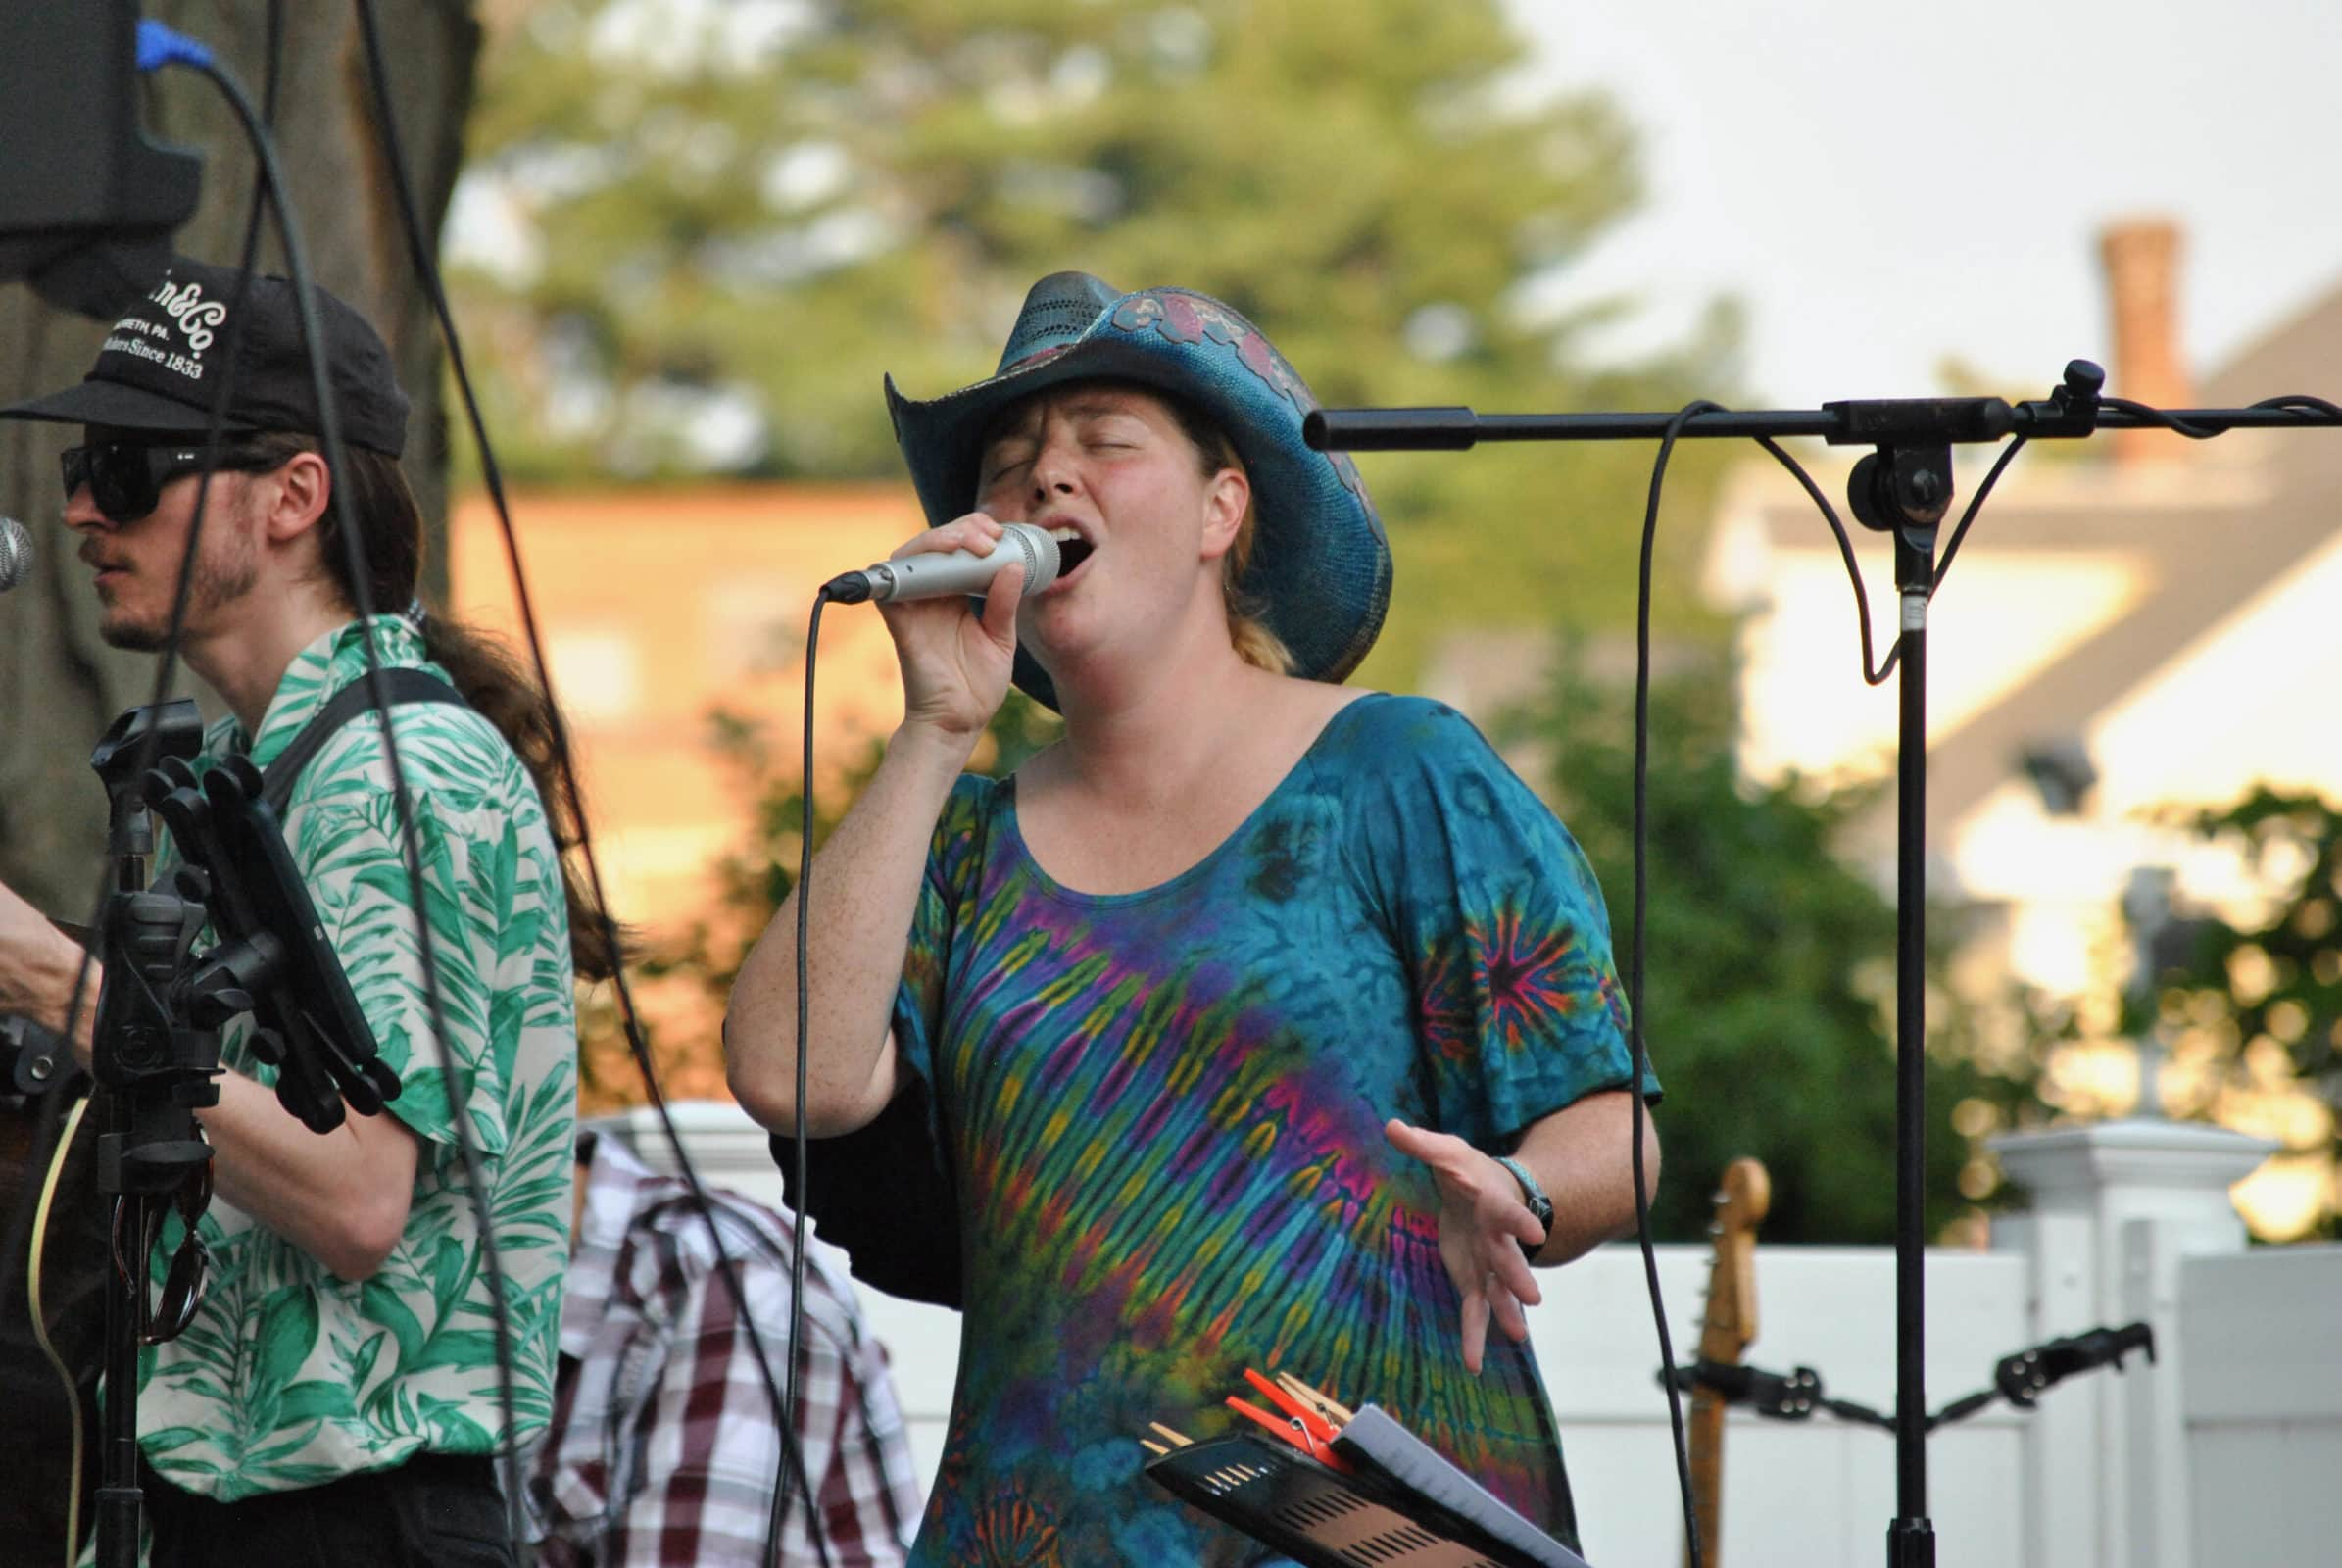 Members of country music band Southbound Train perform as part of this year's ongoing Summer Concert Series in Marlborough.